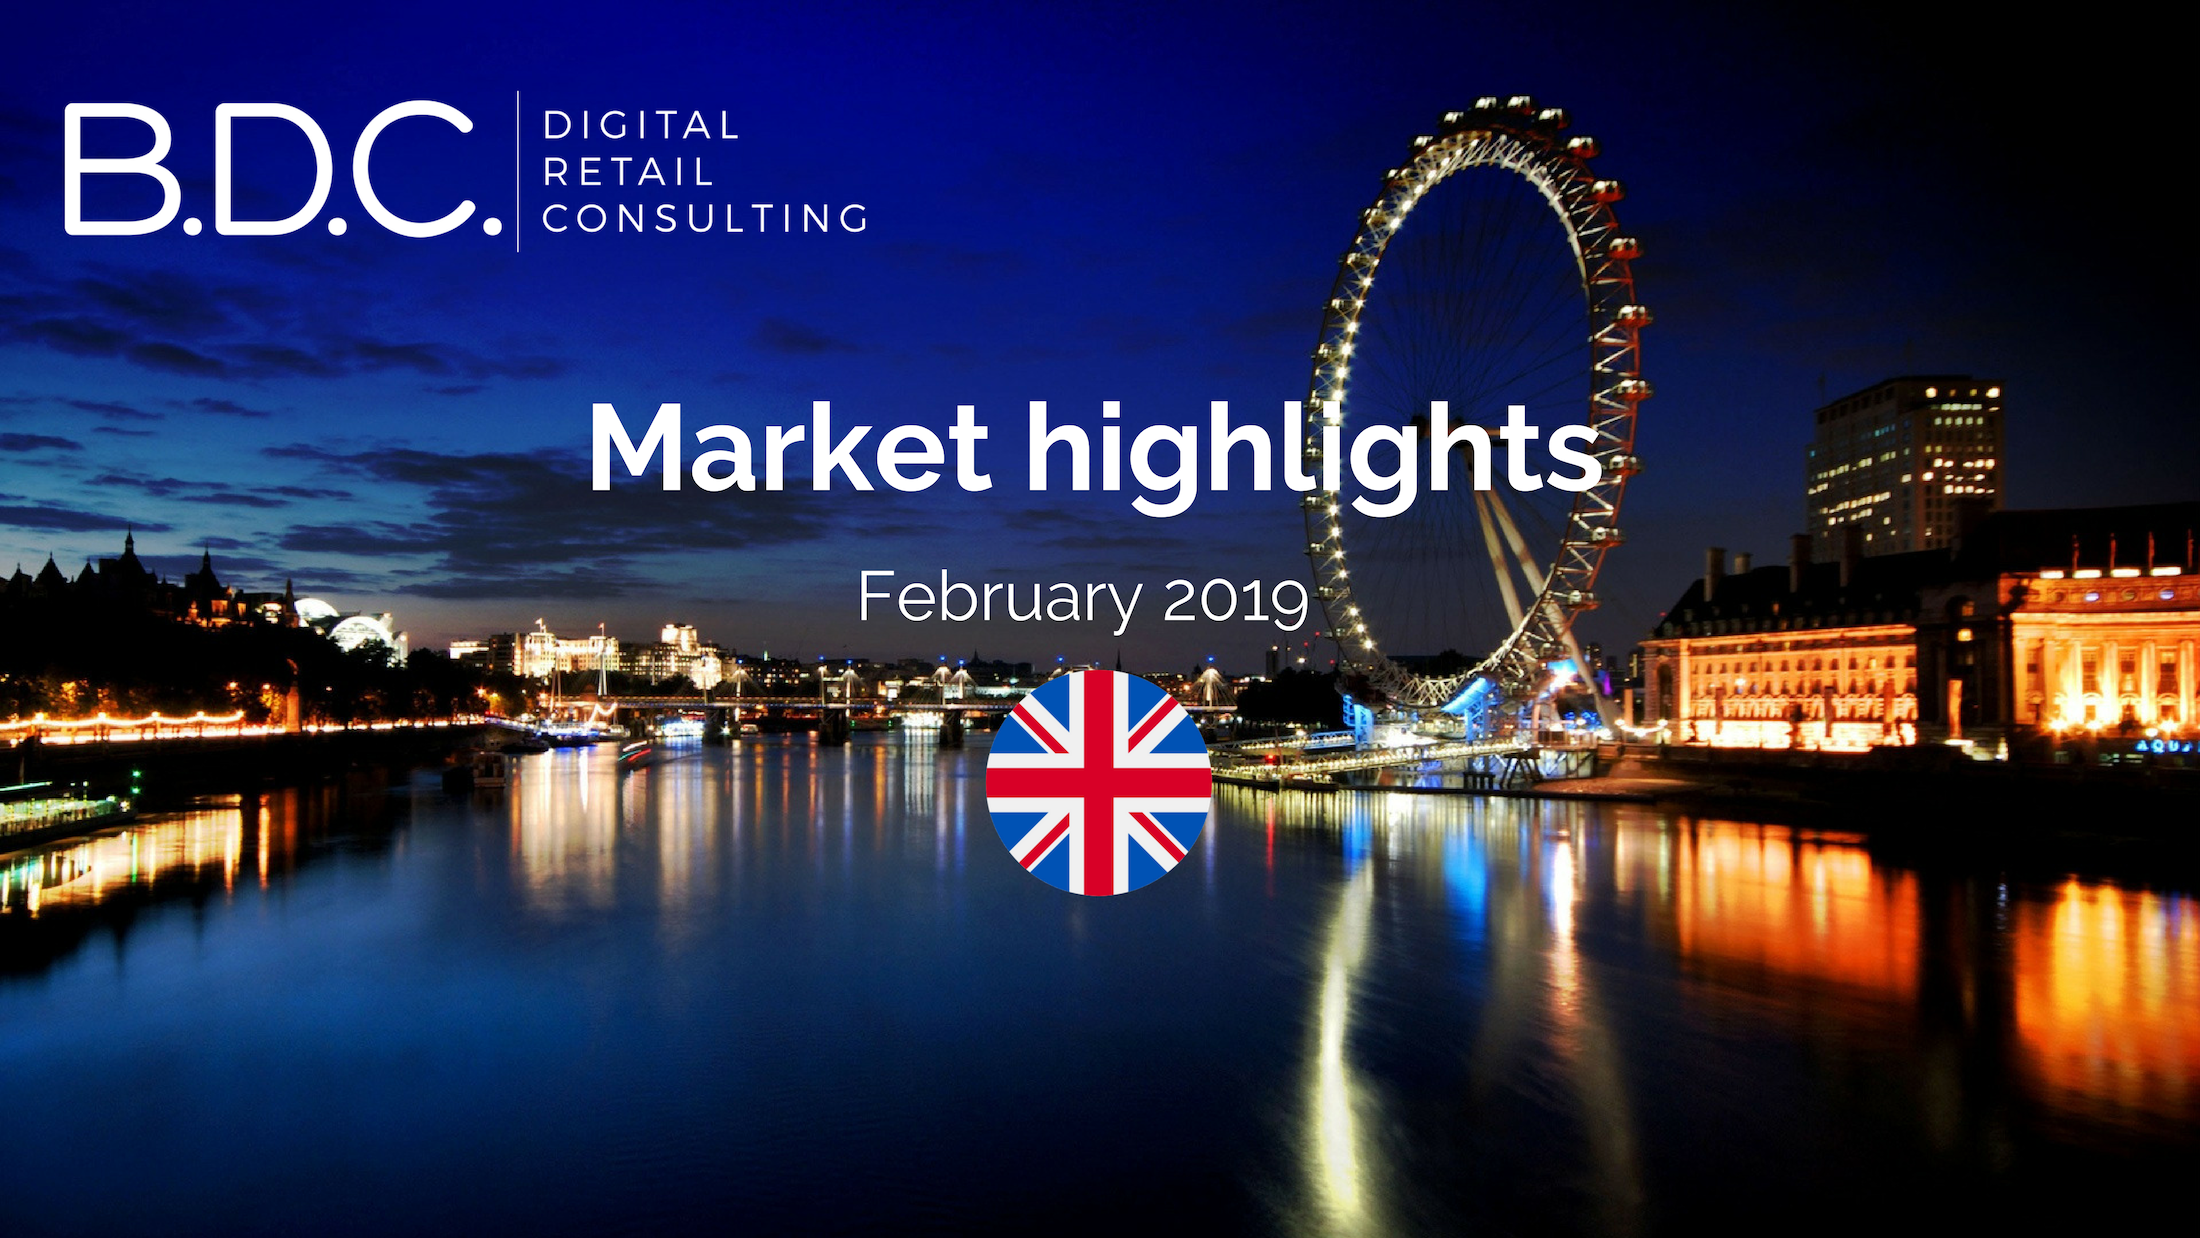 Trends News 21 - UK MARKET HIGHLIGHTS – FEBRUARY 2019